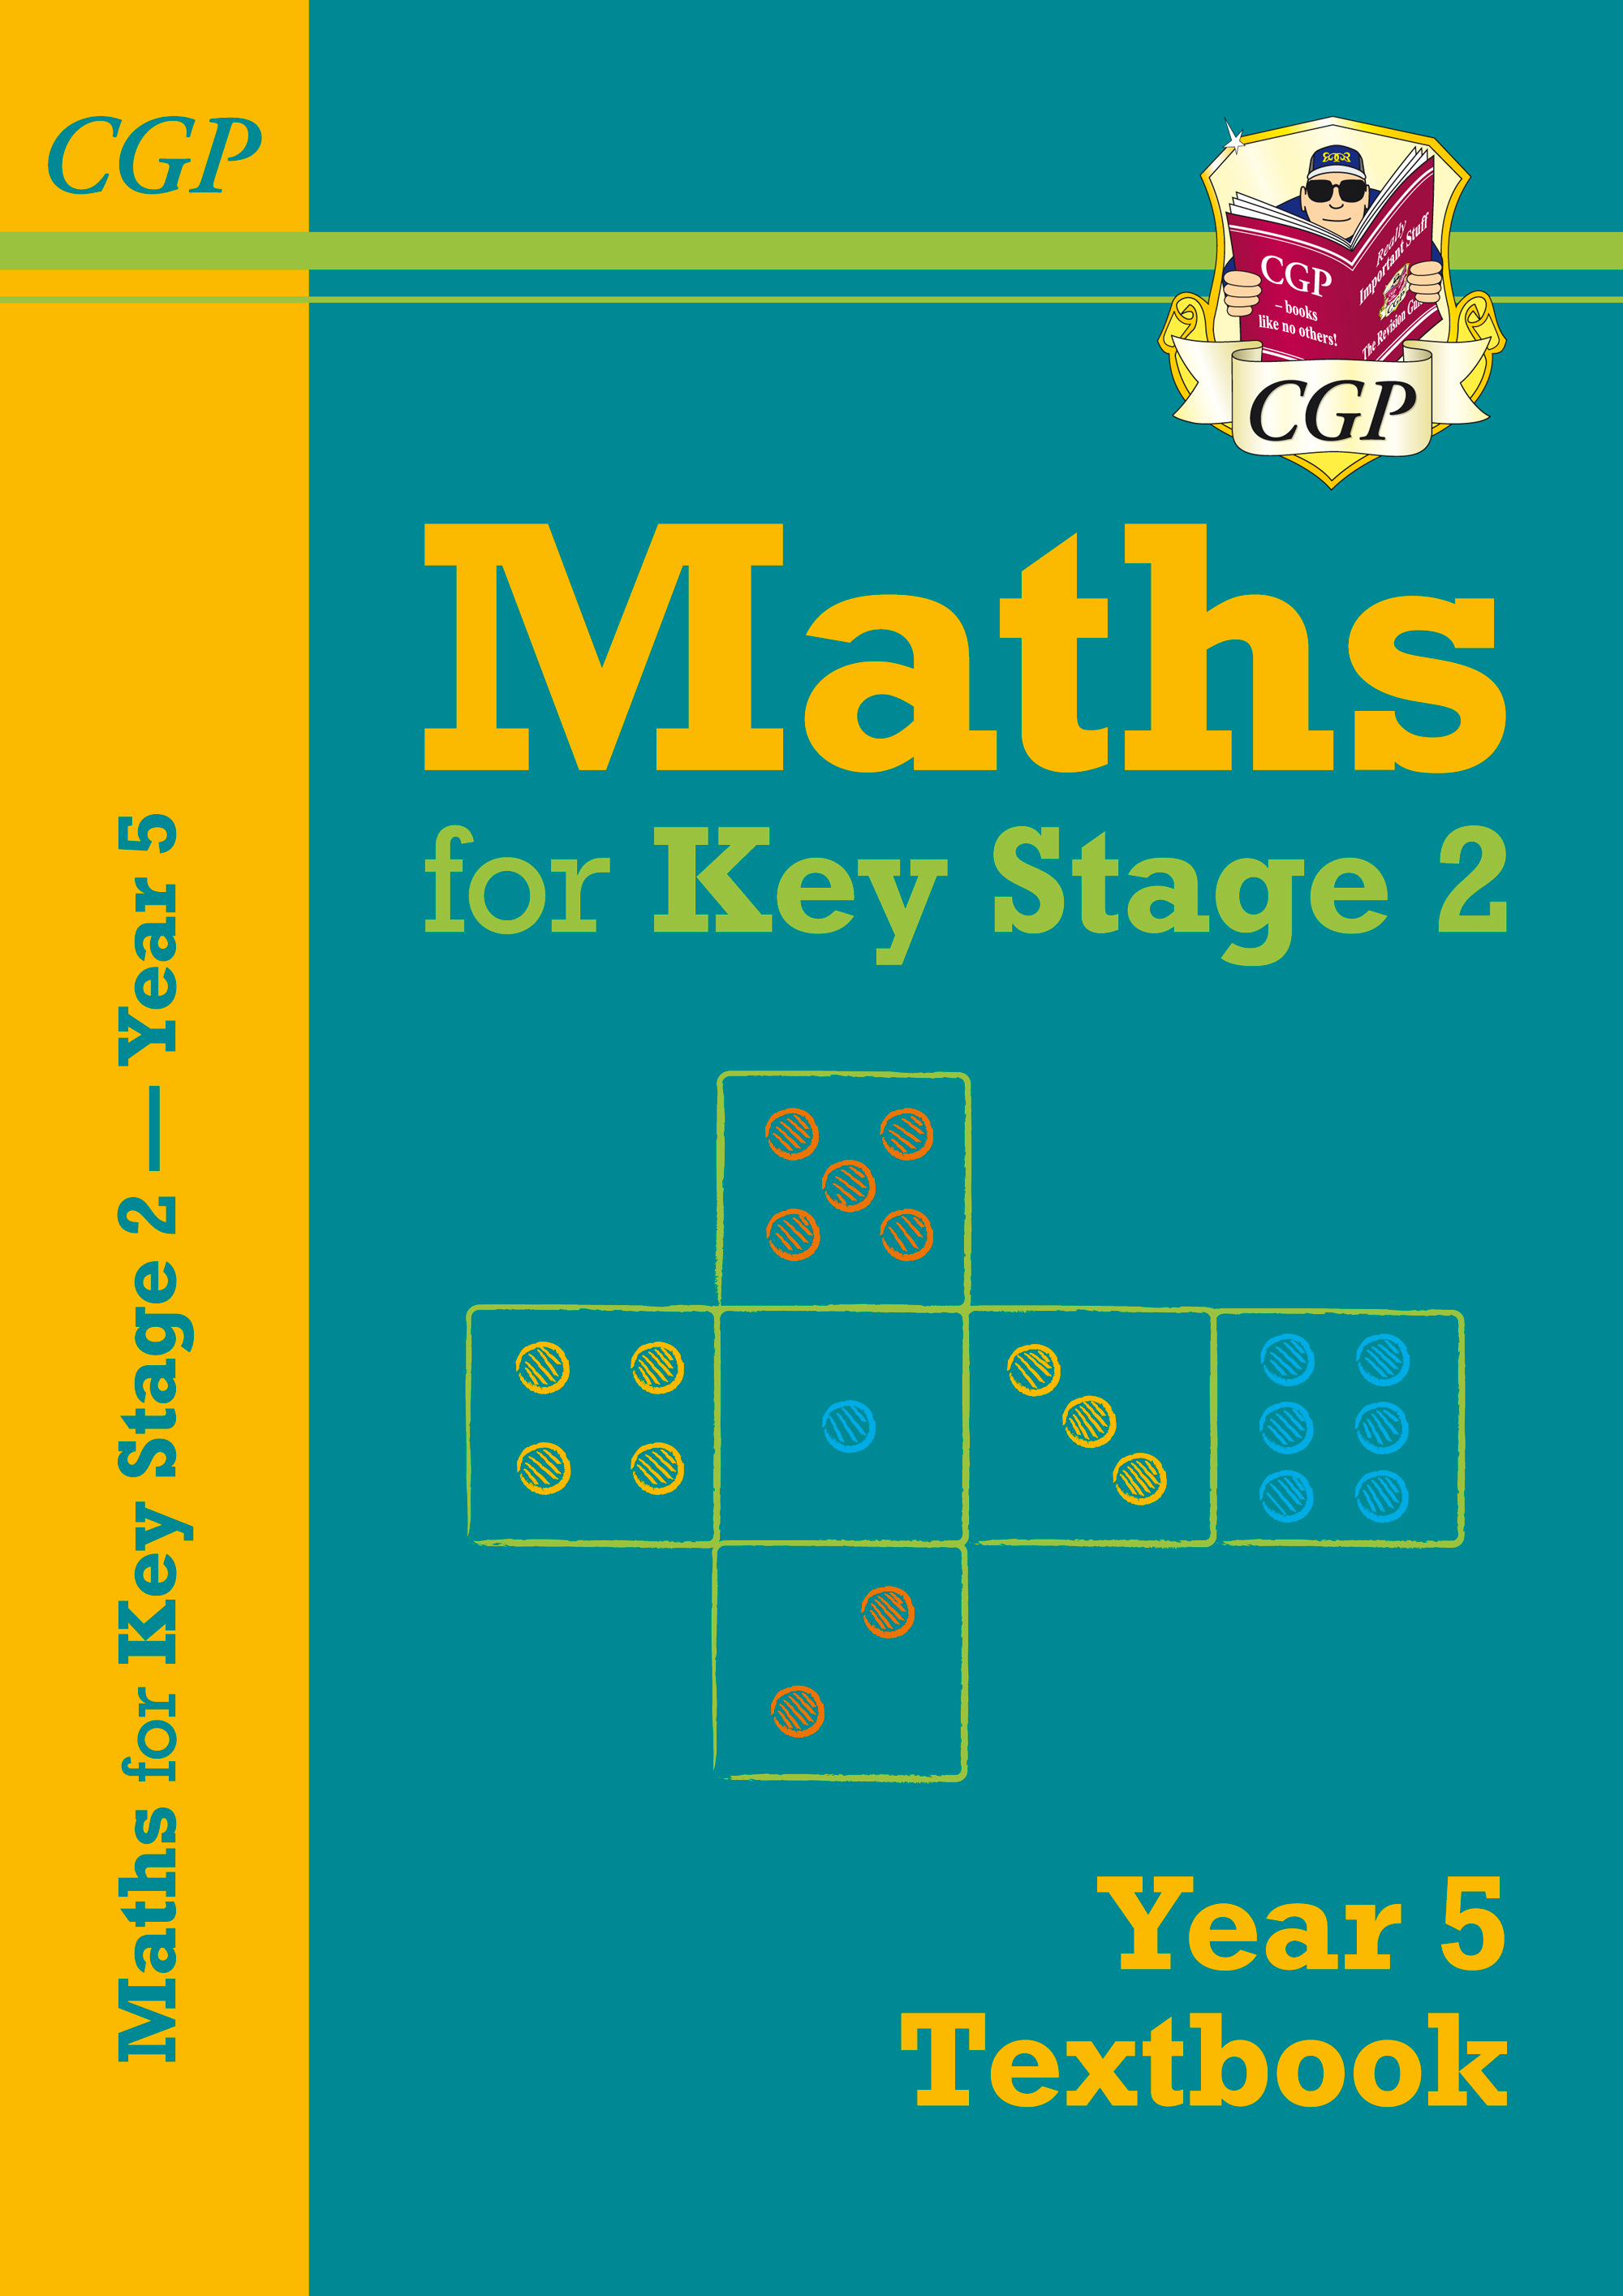 M5PB21 - KS2 Maths Textbook - Year 5